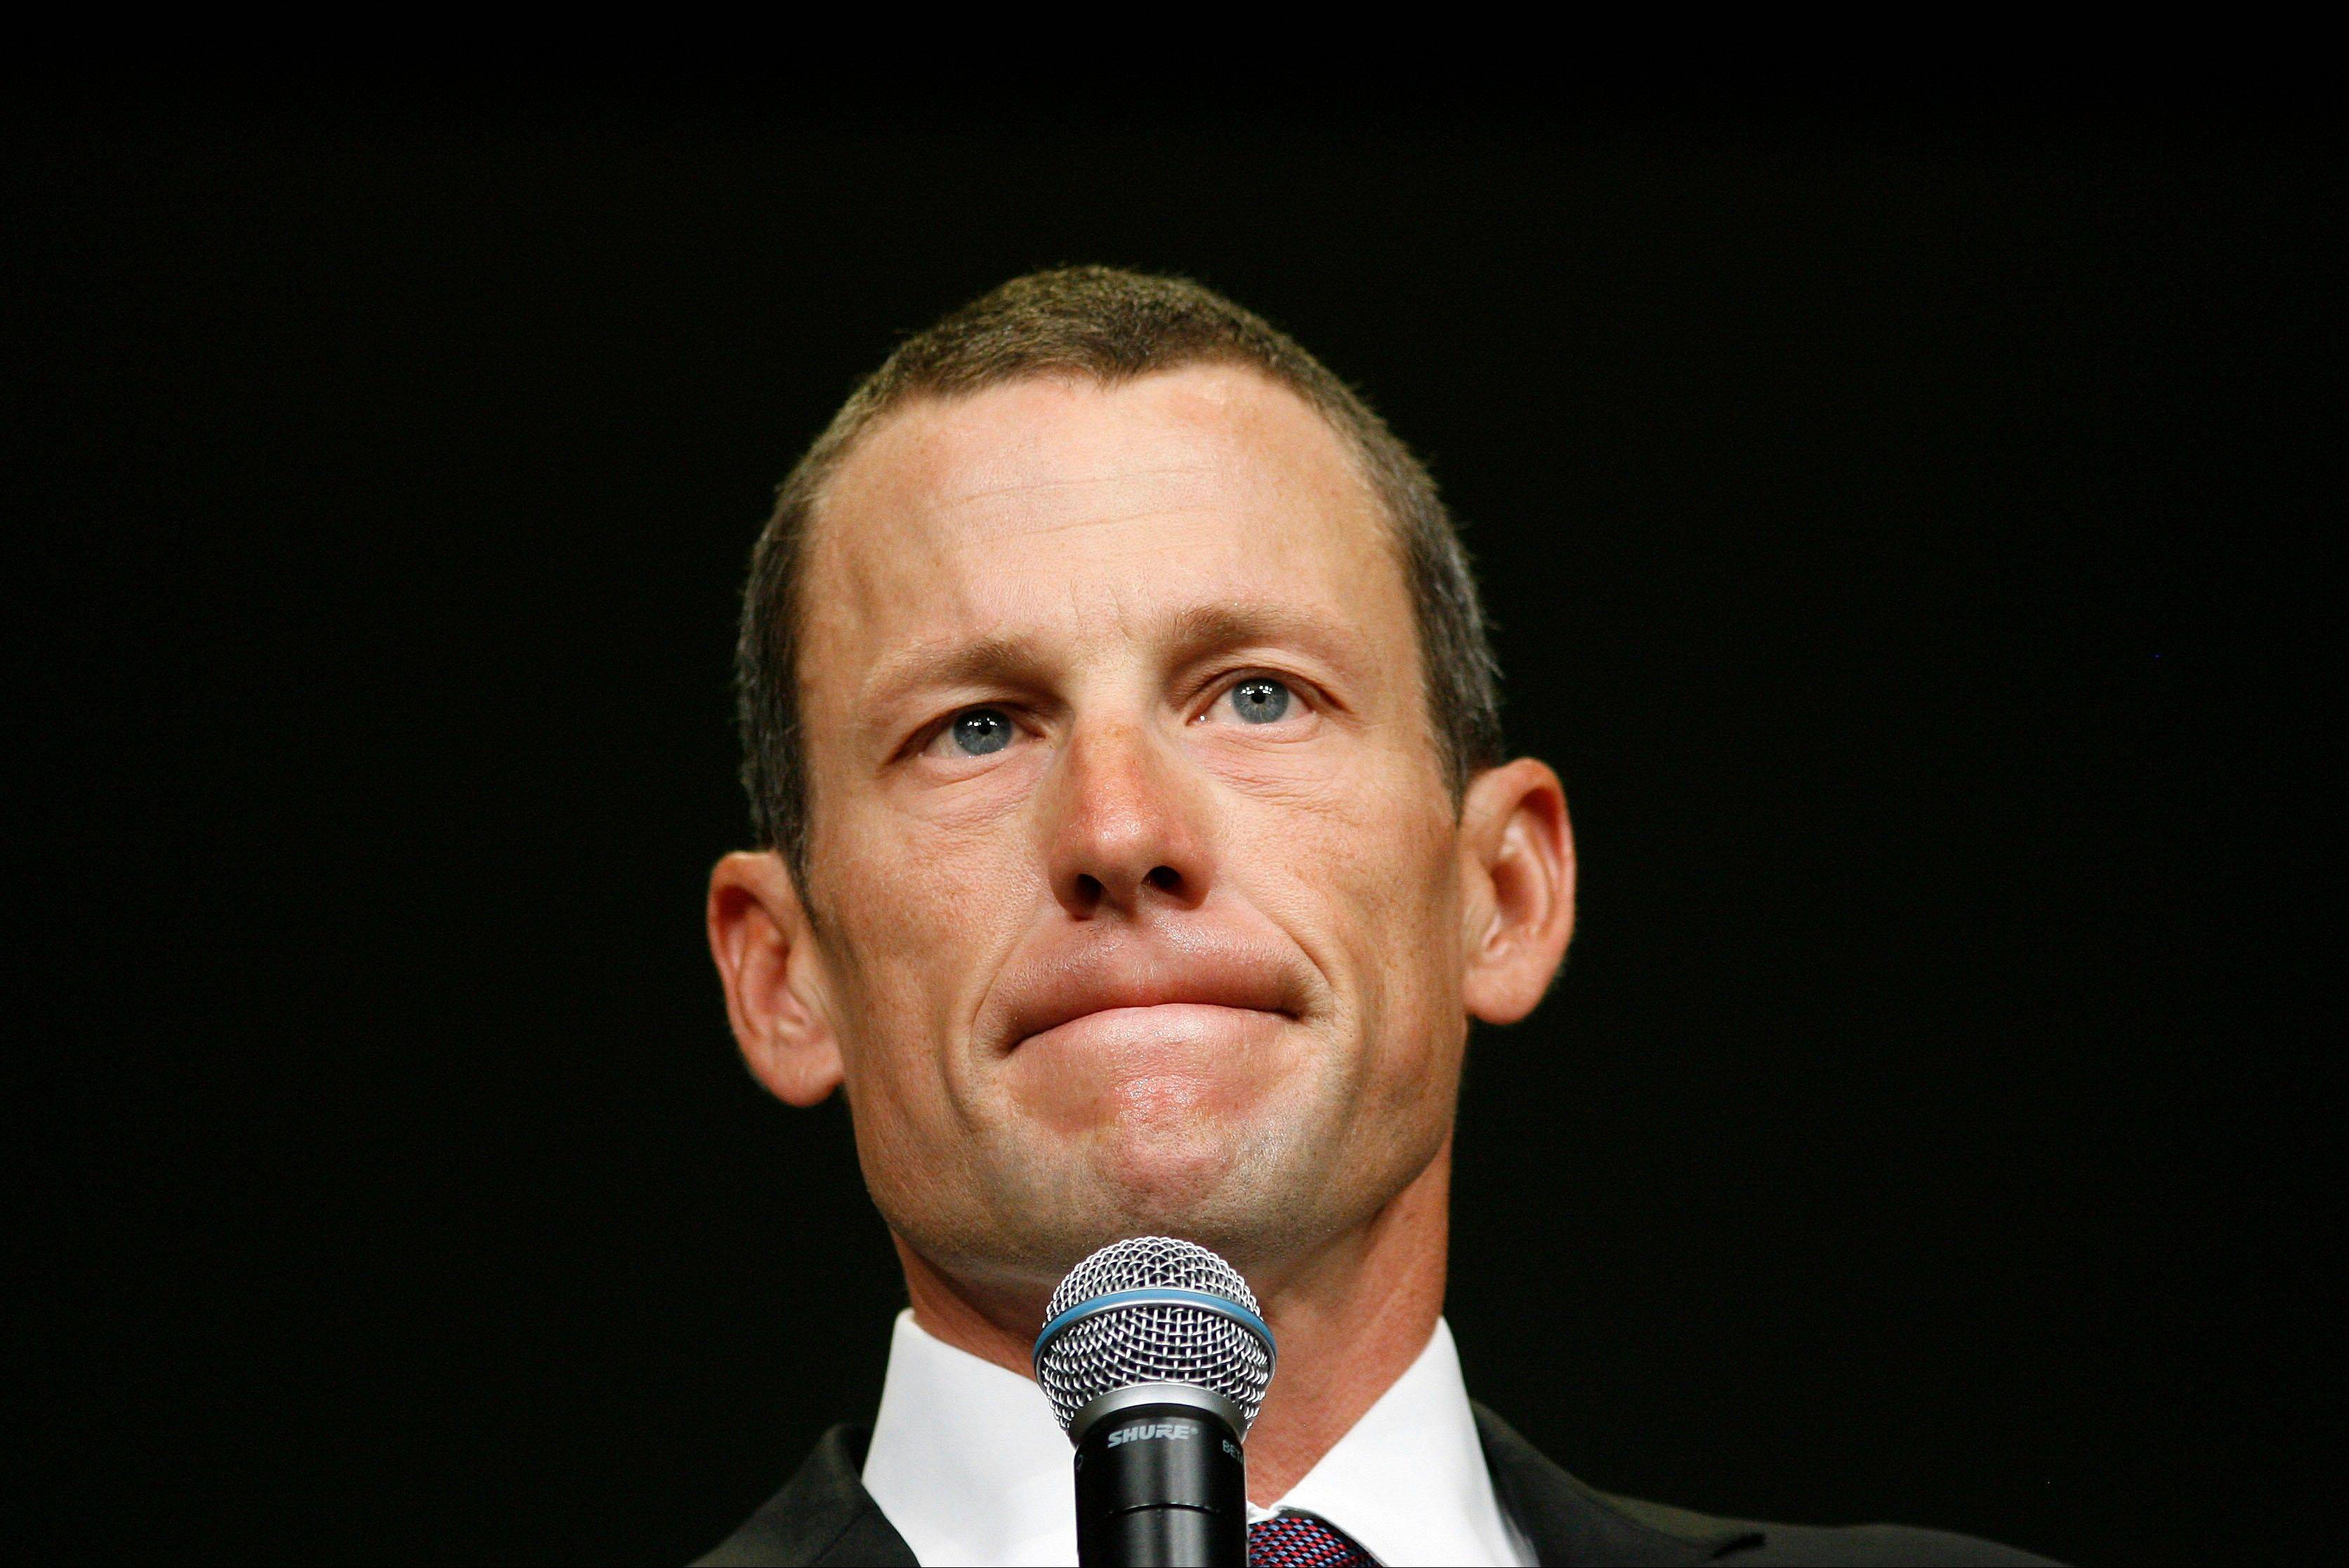 Lance Armstrong is stepping down as chairman of his Livestrong cancer-fighting charity so the group can focus on its mission instead of its founder's problems. The move came a week after the U.S. Anti-Doping Agency released a massive report detailing allegations of widespread doping by Armstrong and his teams when he won the Tour de France seven consecutive times from 1999 to 2005.